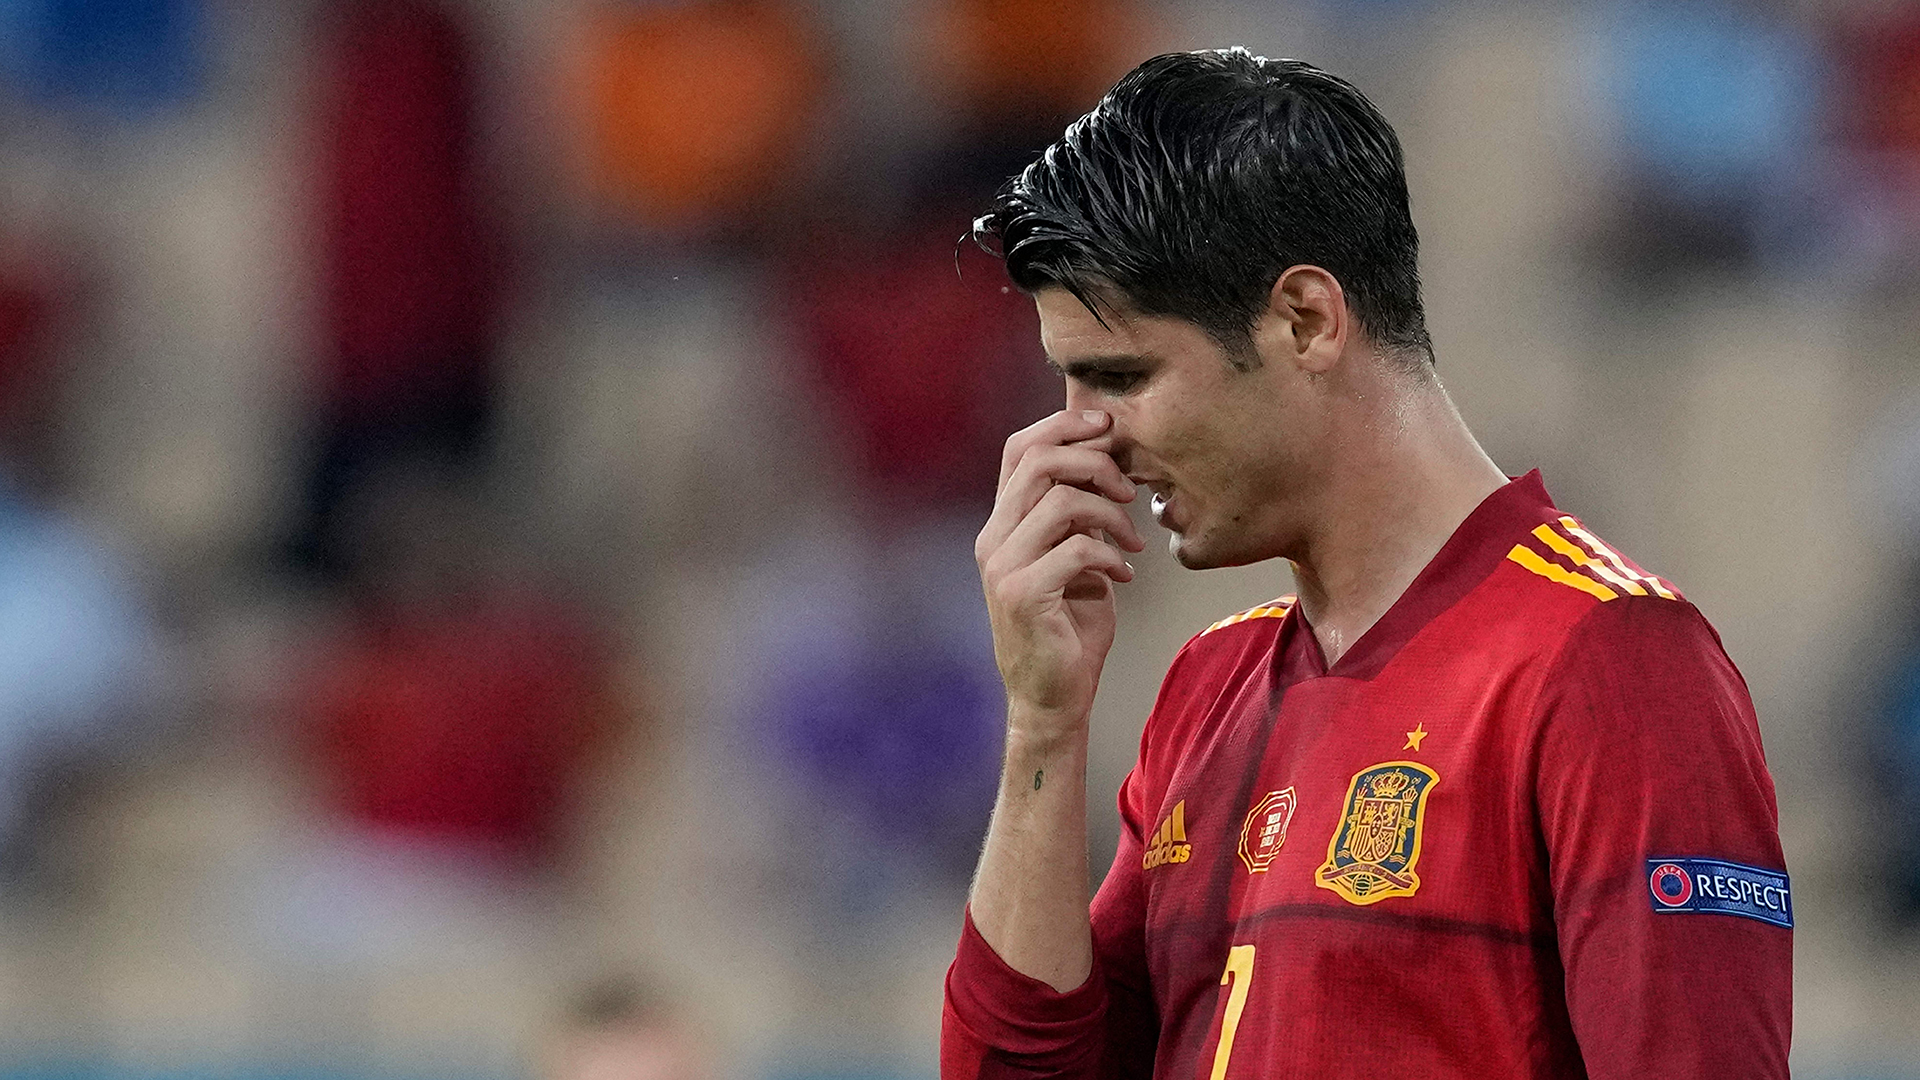 'I can't be liked by everyone' - Morata addresses Euro 2020 criticism